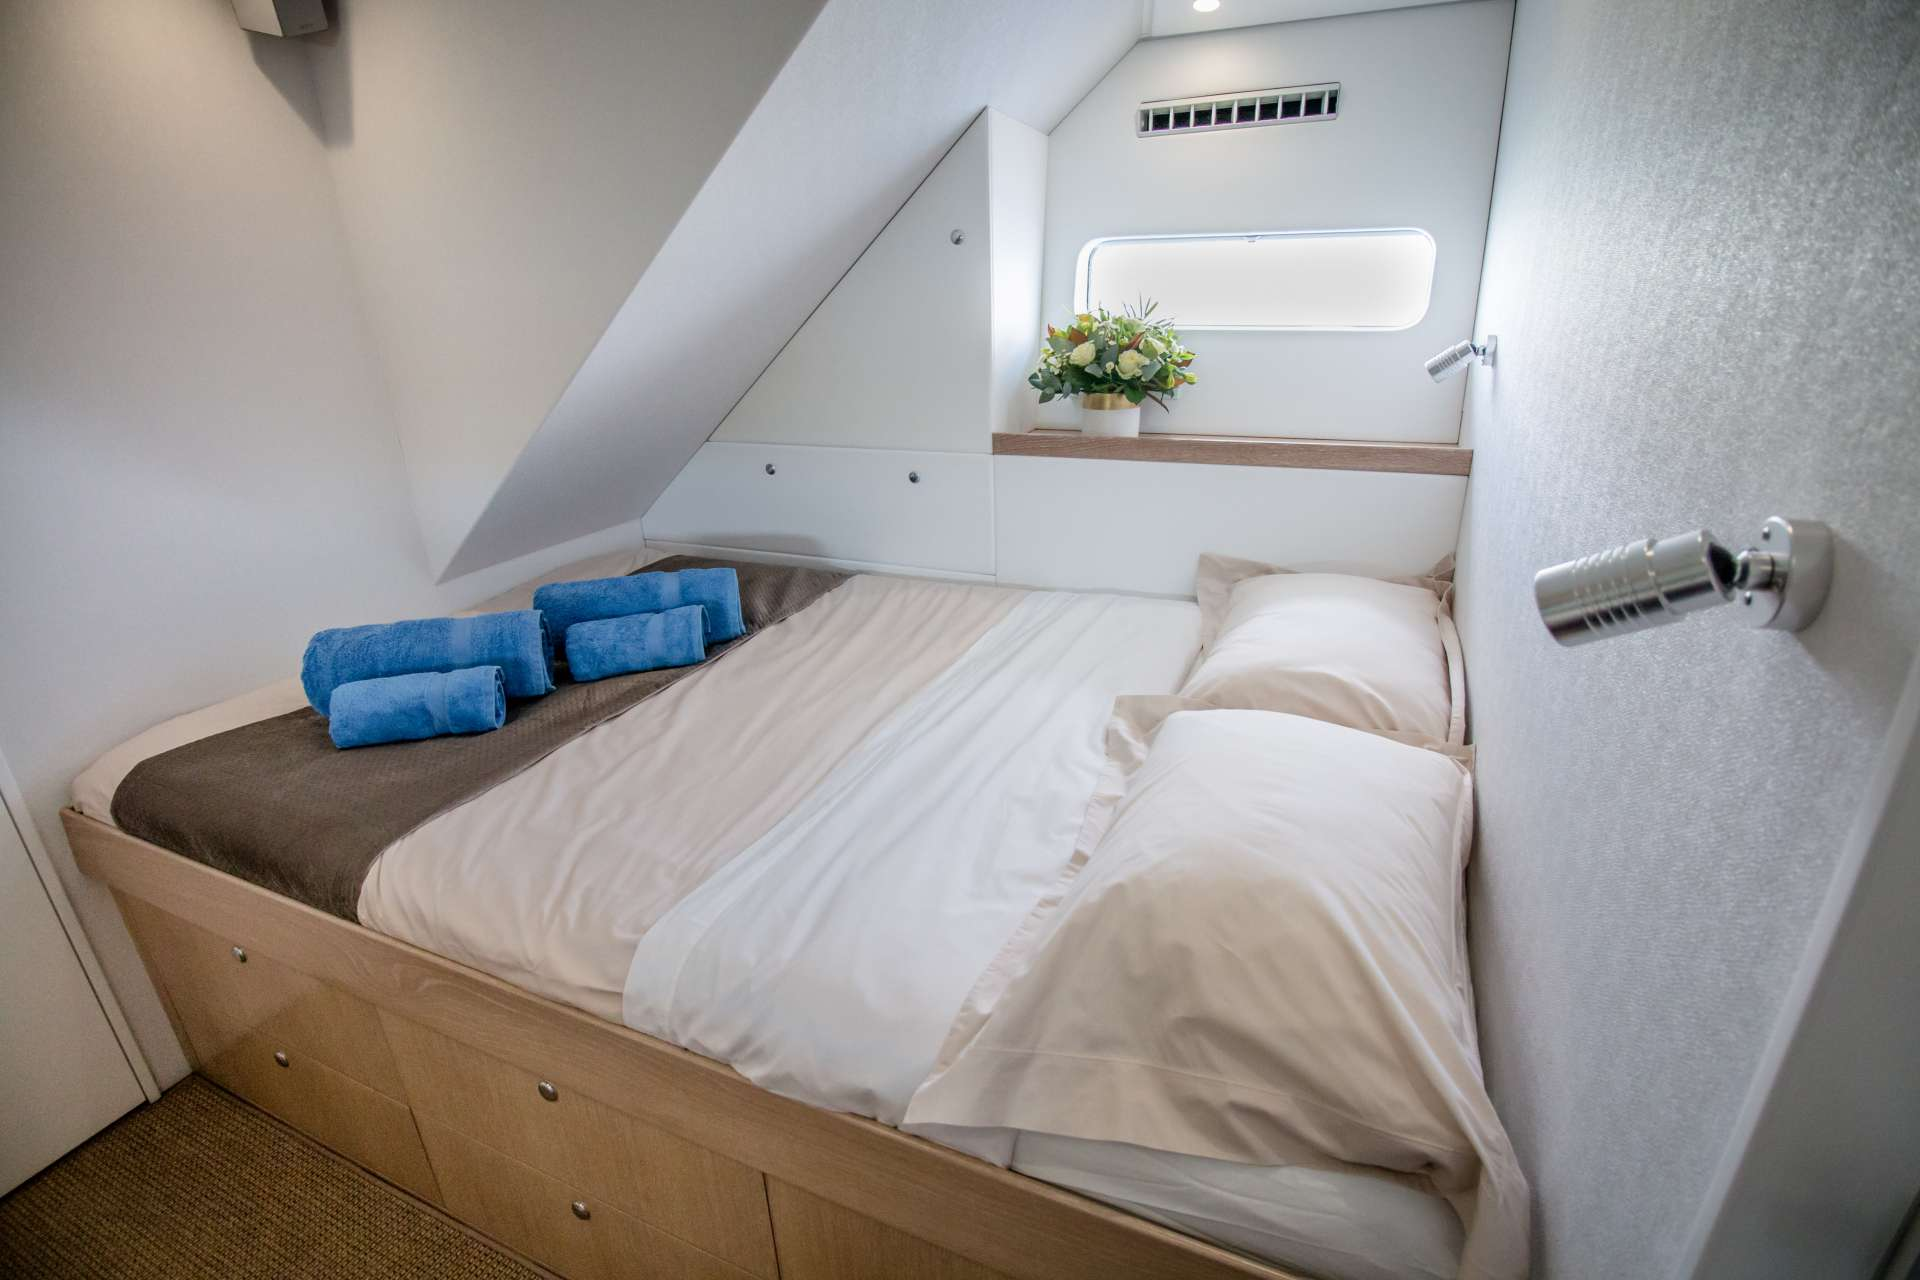 Guest cabins are ensuite with separate glass-enclosed showers